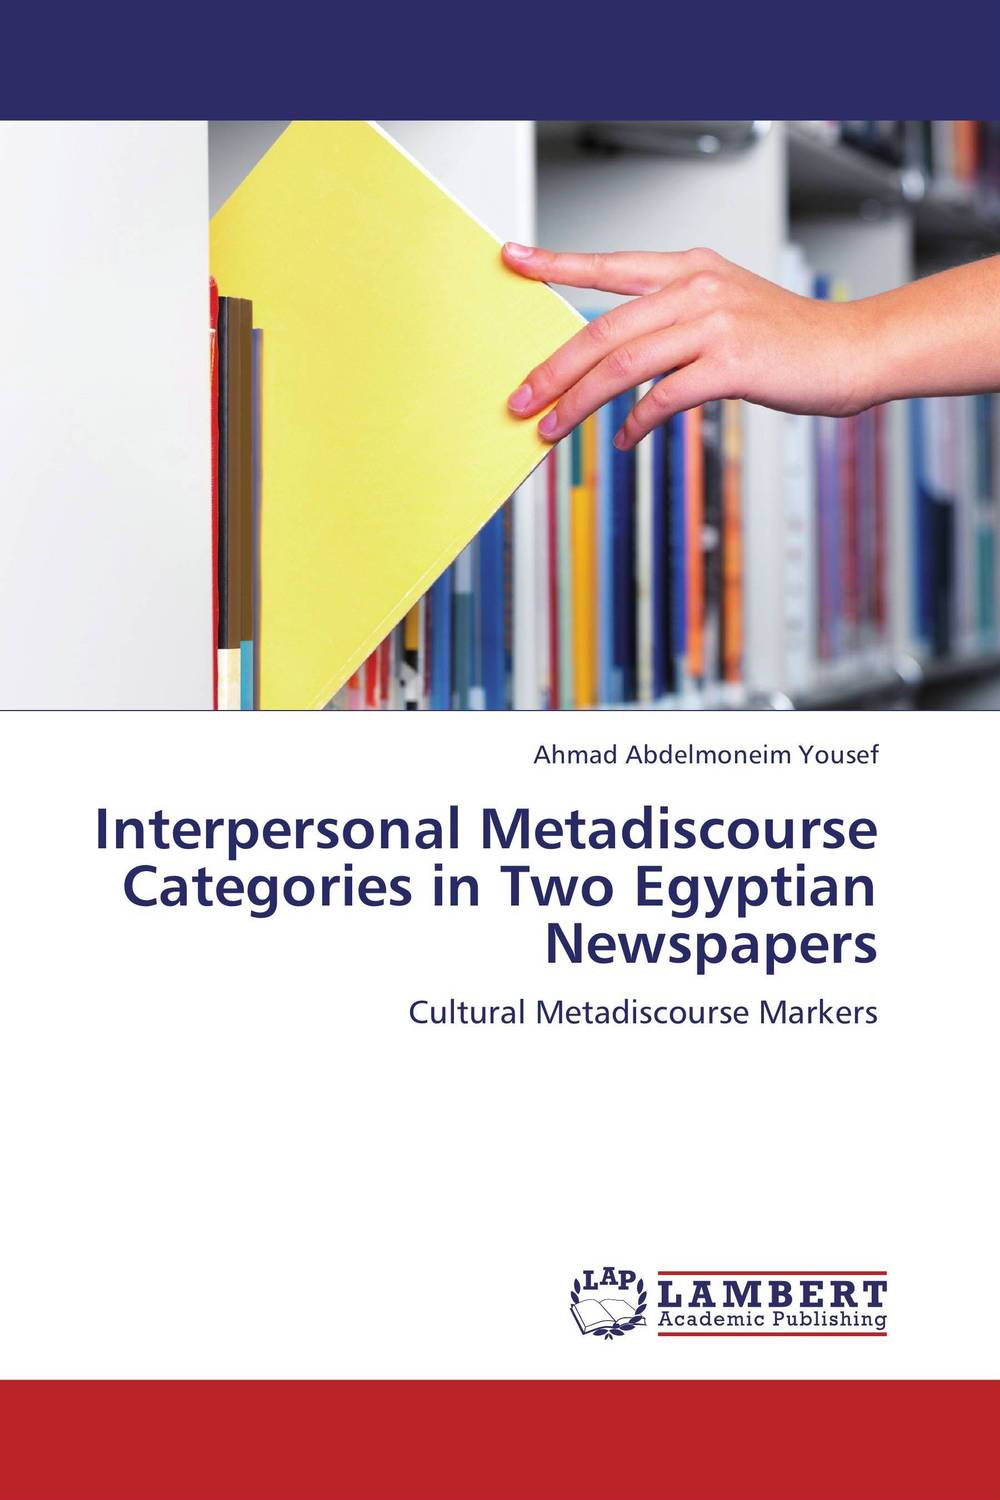 Interpersonal Metadiscourse Categories in Two Egyptian Newspapers categories